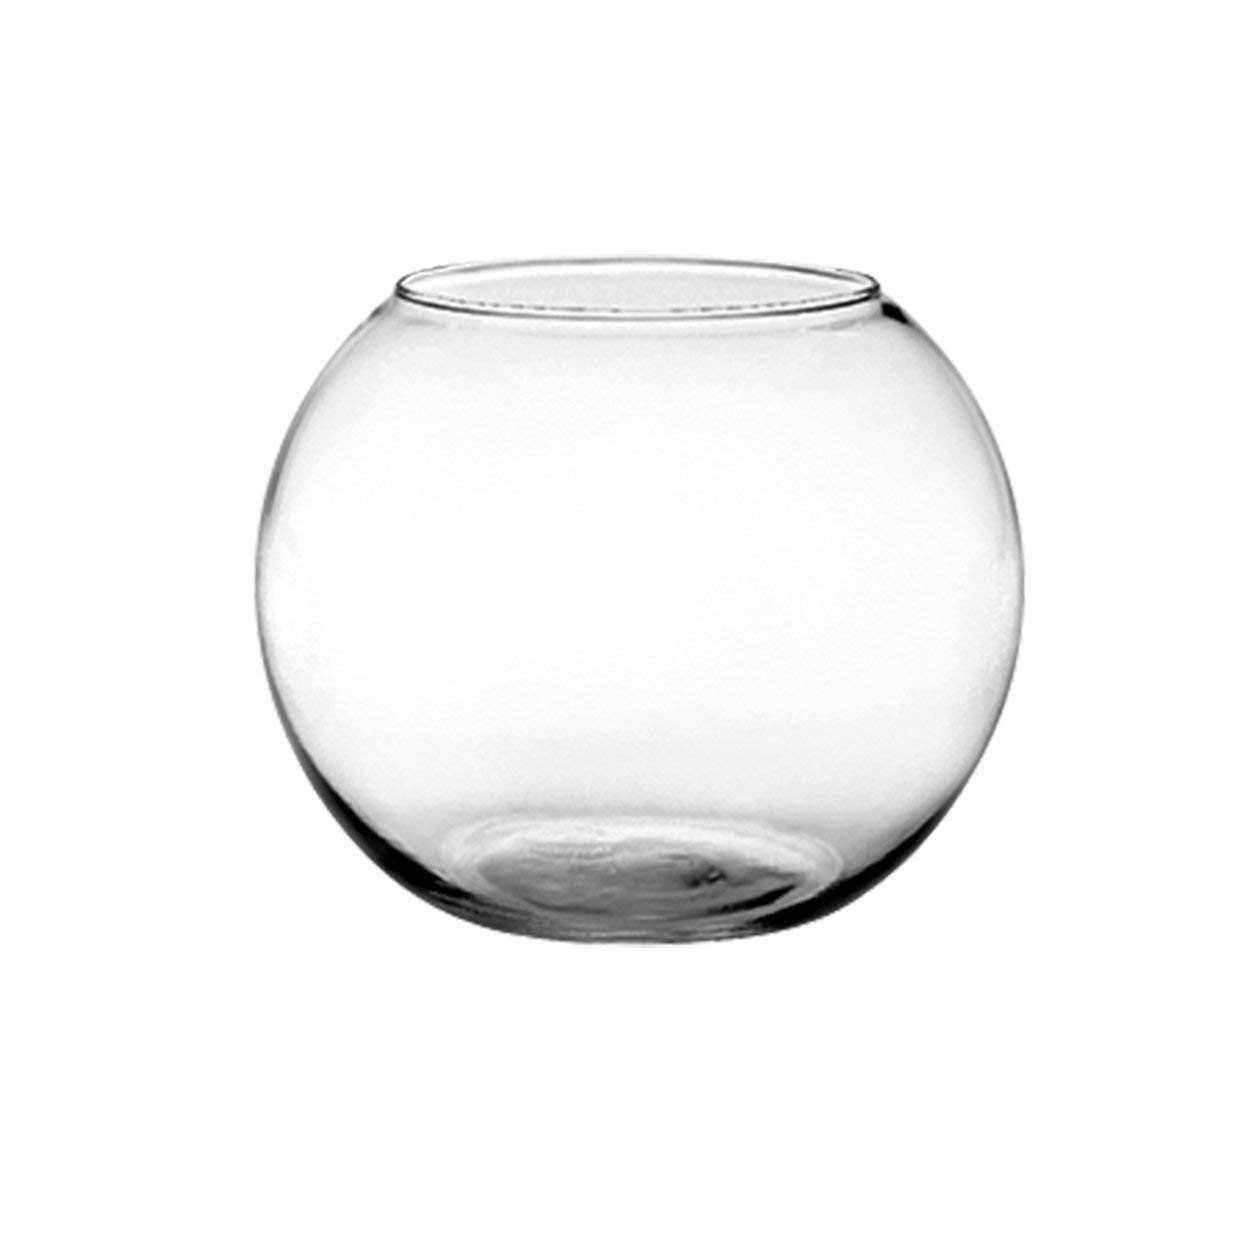 clear glass bubble bowl vase of amazon com set of 4 syndicate sales 6 inches clear rose bowl for amazon com set of 4 syndicate sales 6 inches clear rose bowl bundled by maven gifts garden outdoor